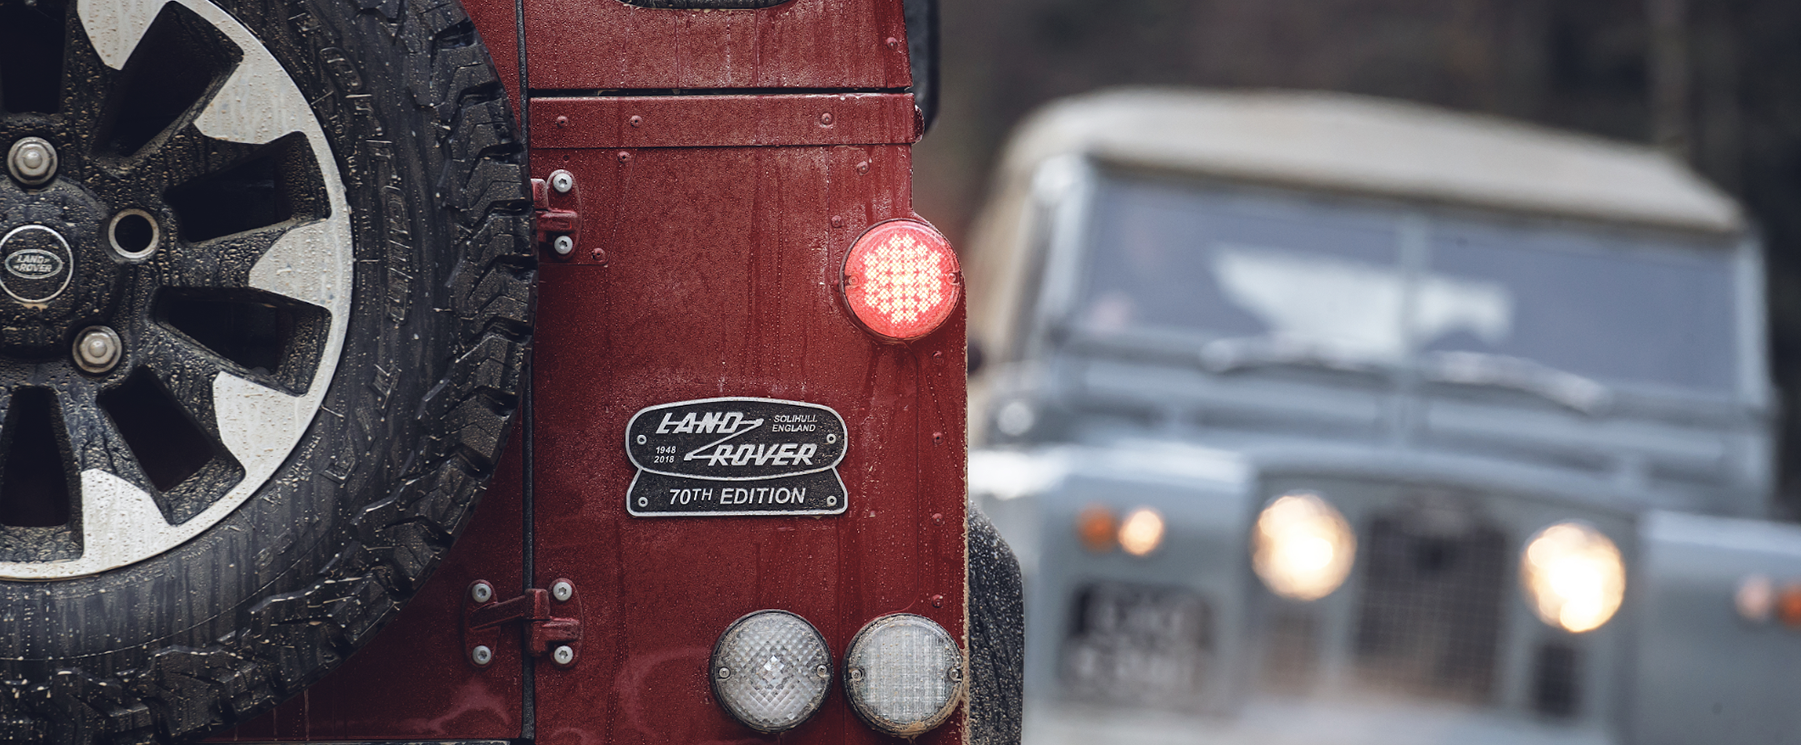 2018 Land Rover Defender 70th Anniversary Edition